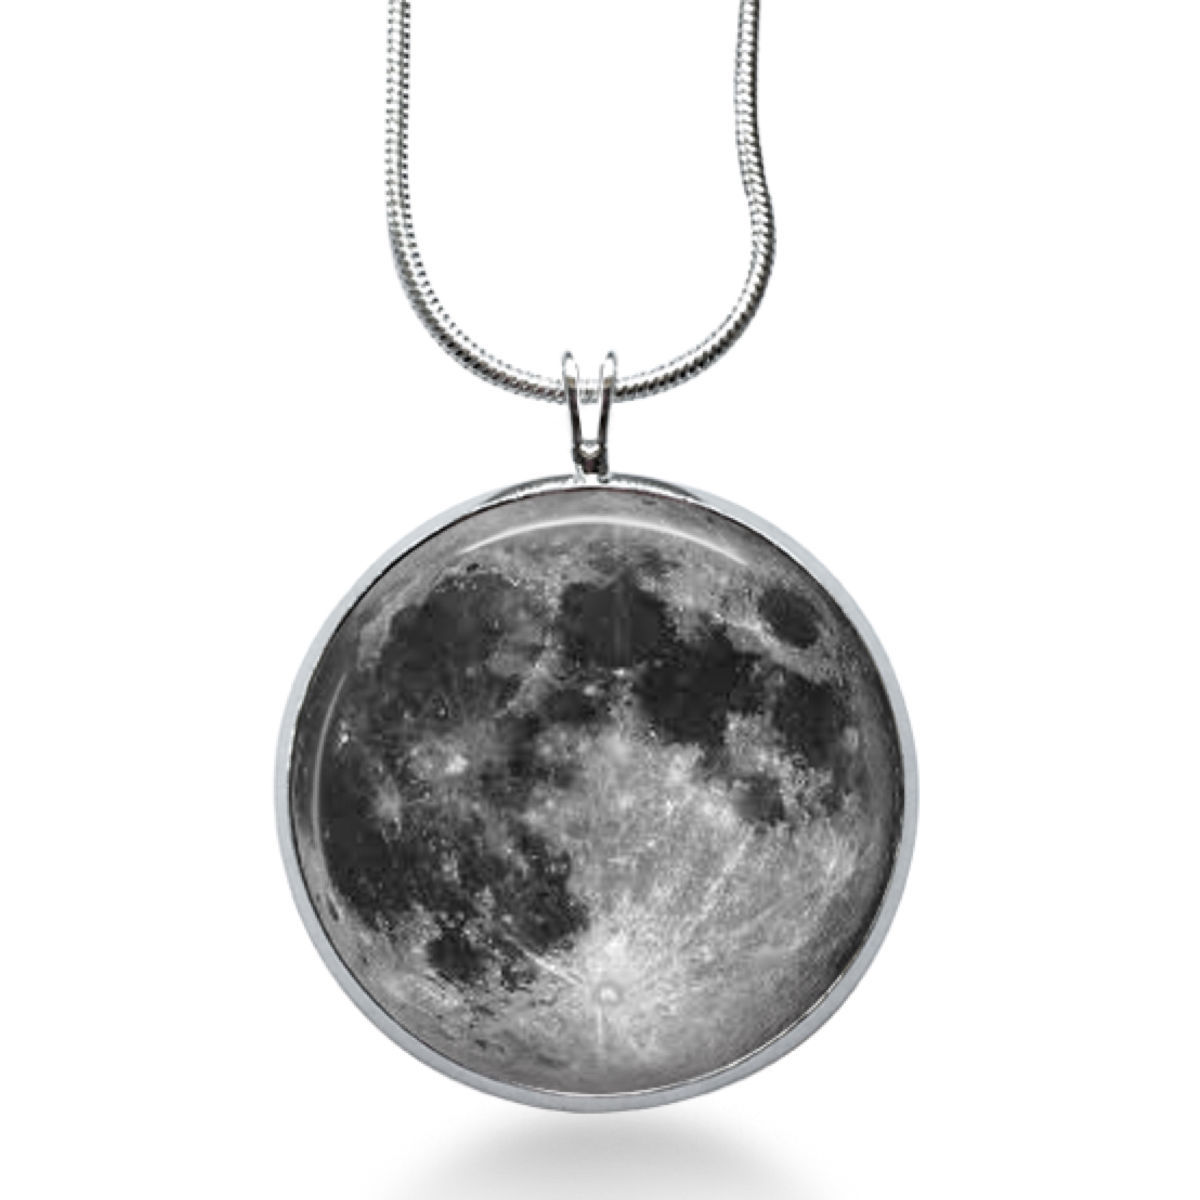 FULL MOON Necklace - Space Picture Pendant - Galaxy Jewelry - Full Moon - Galaxy